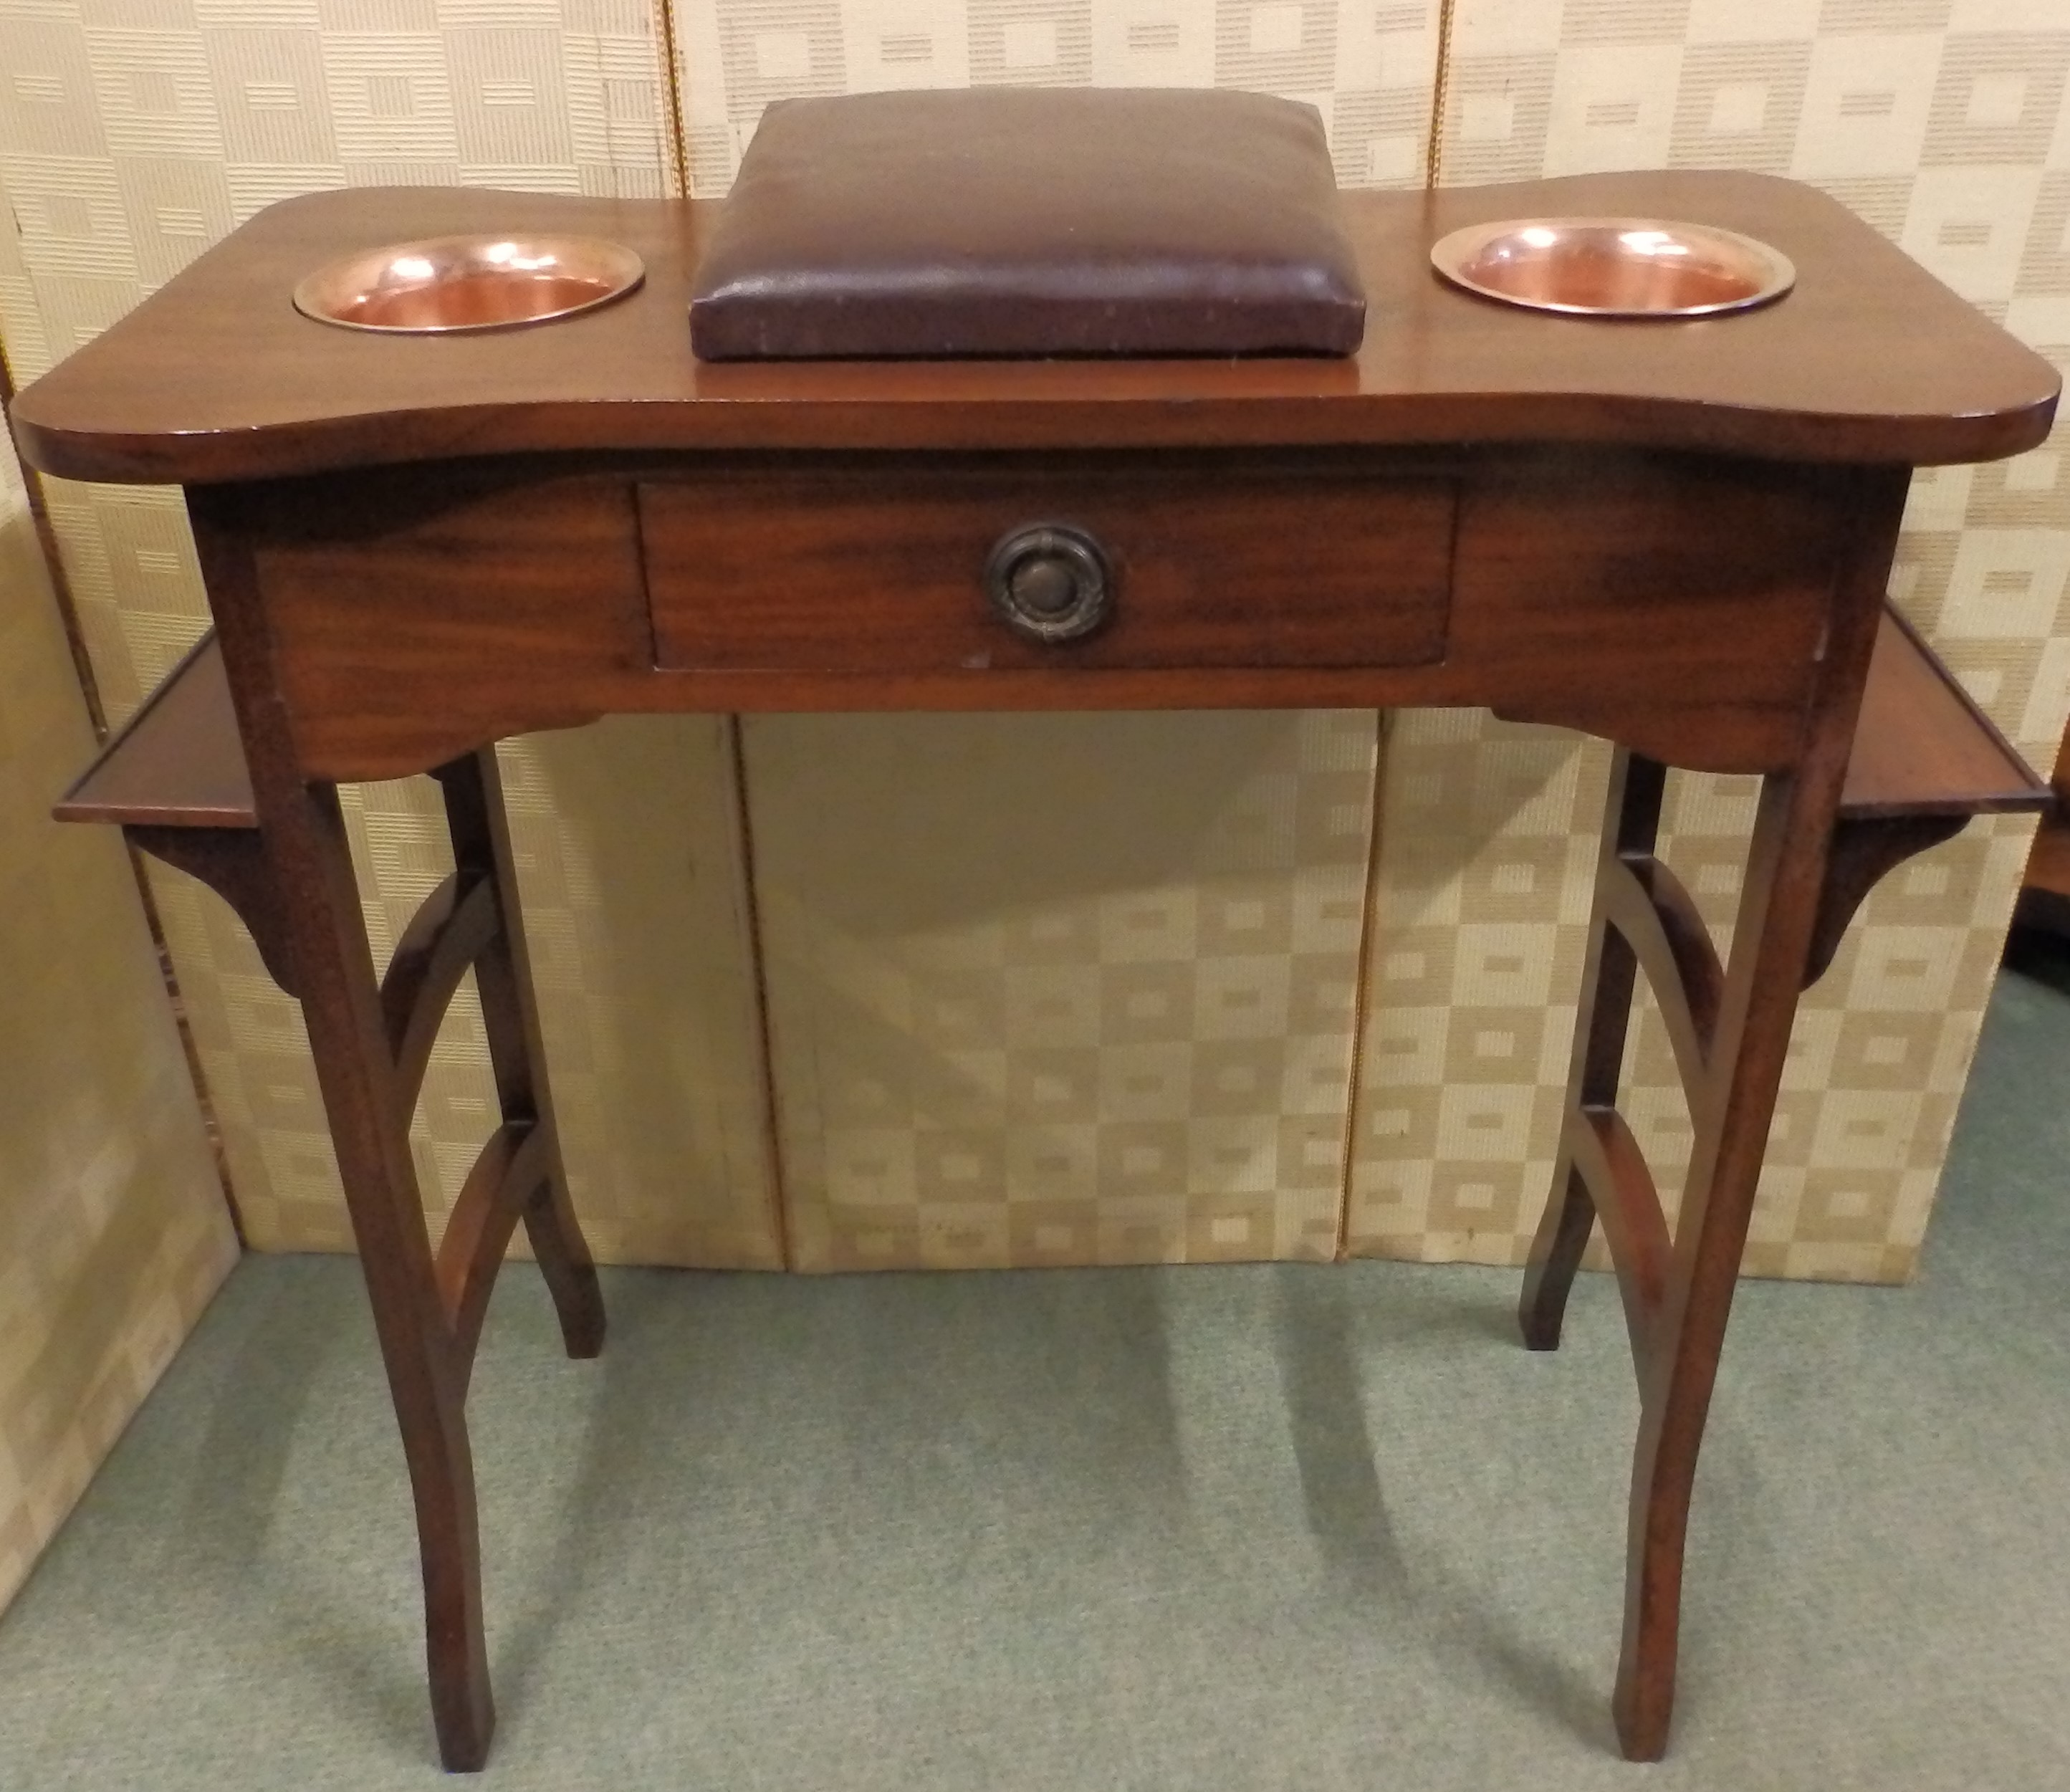 Edwardian manicure table